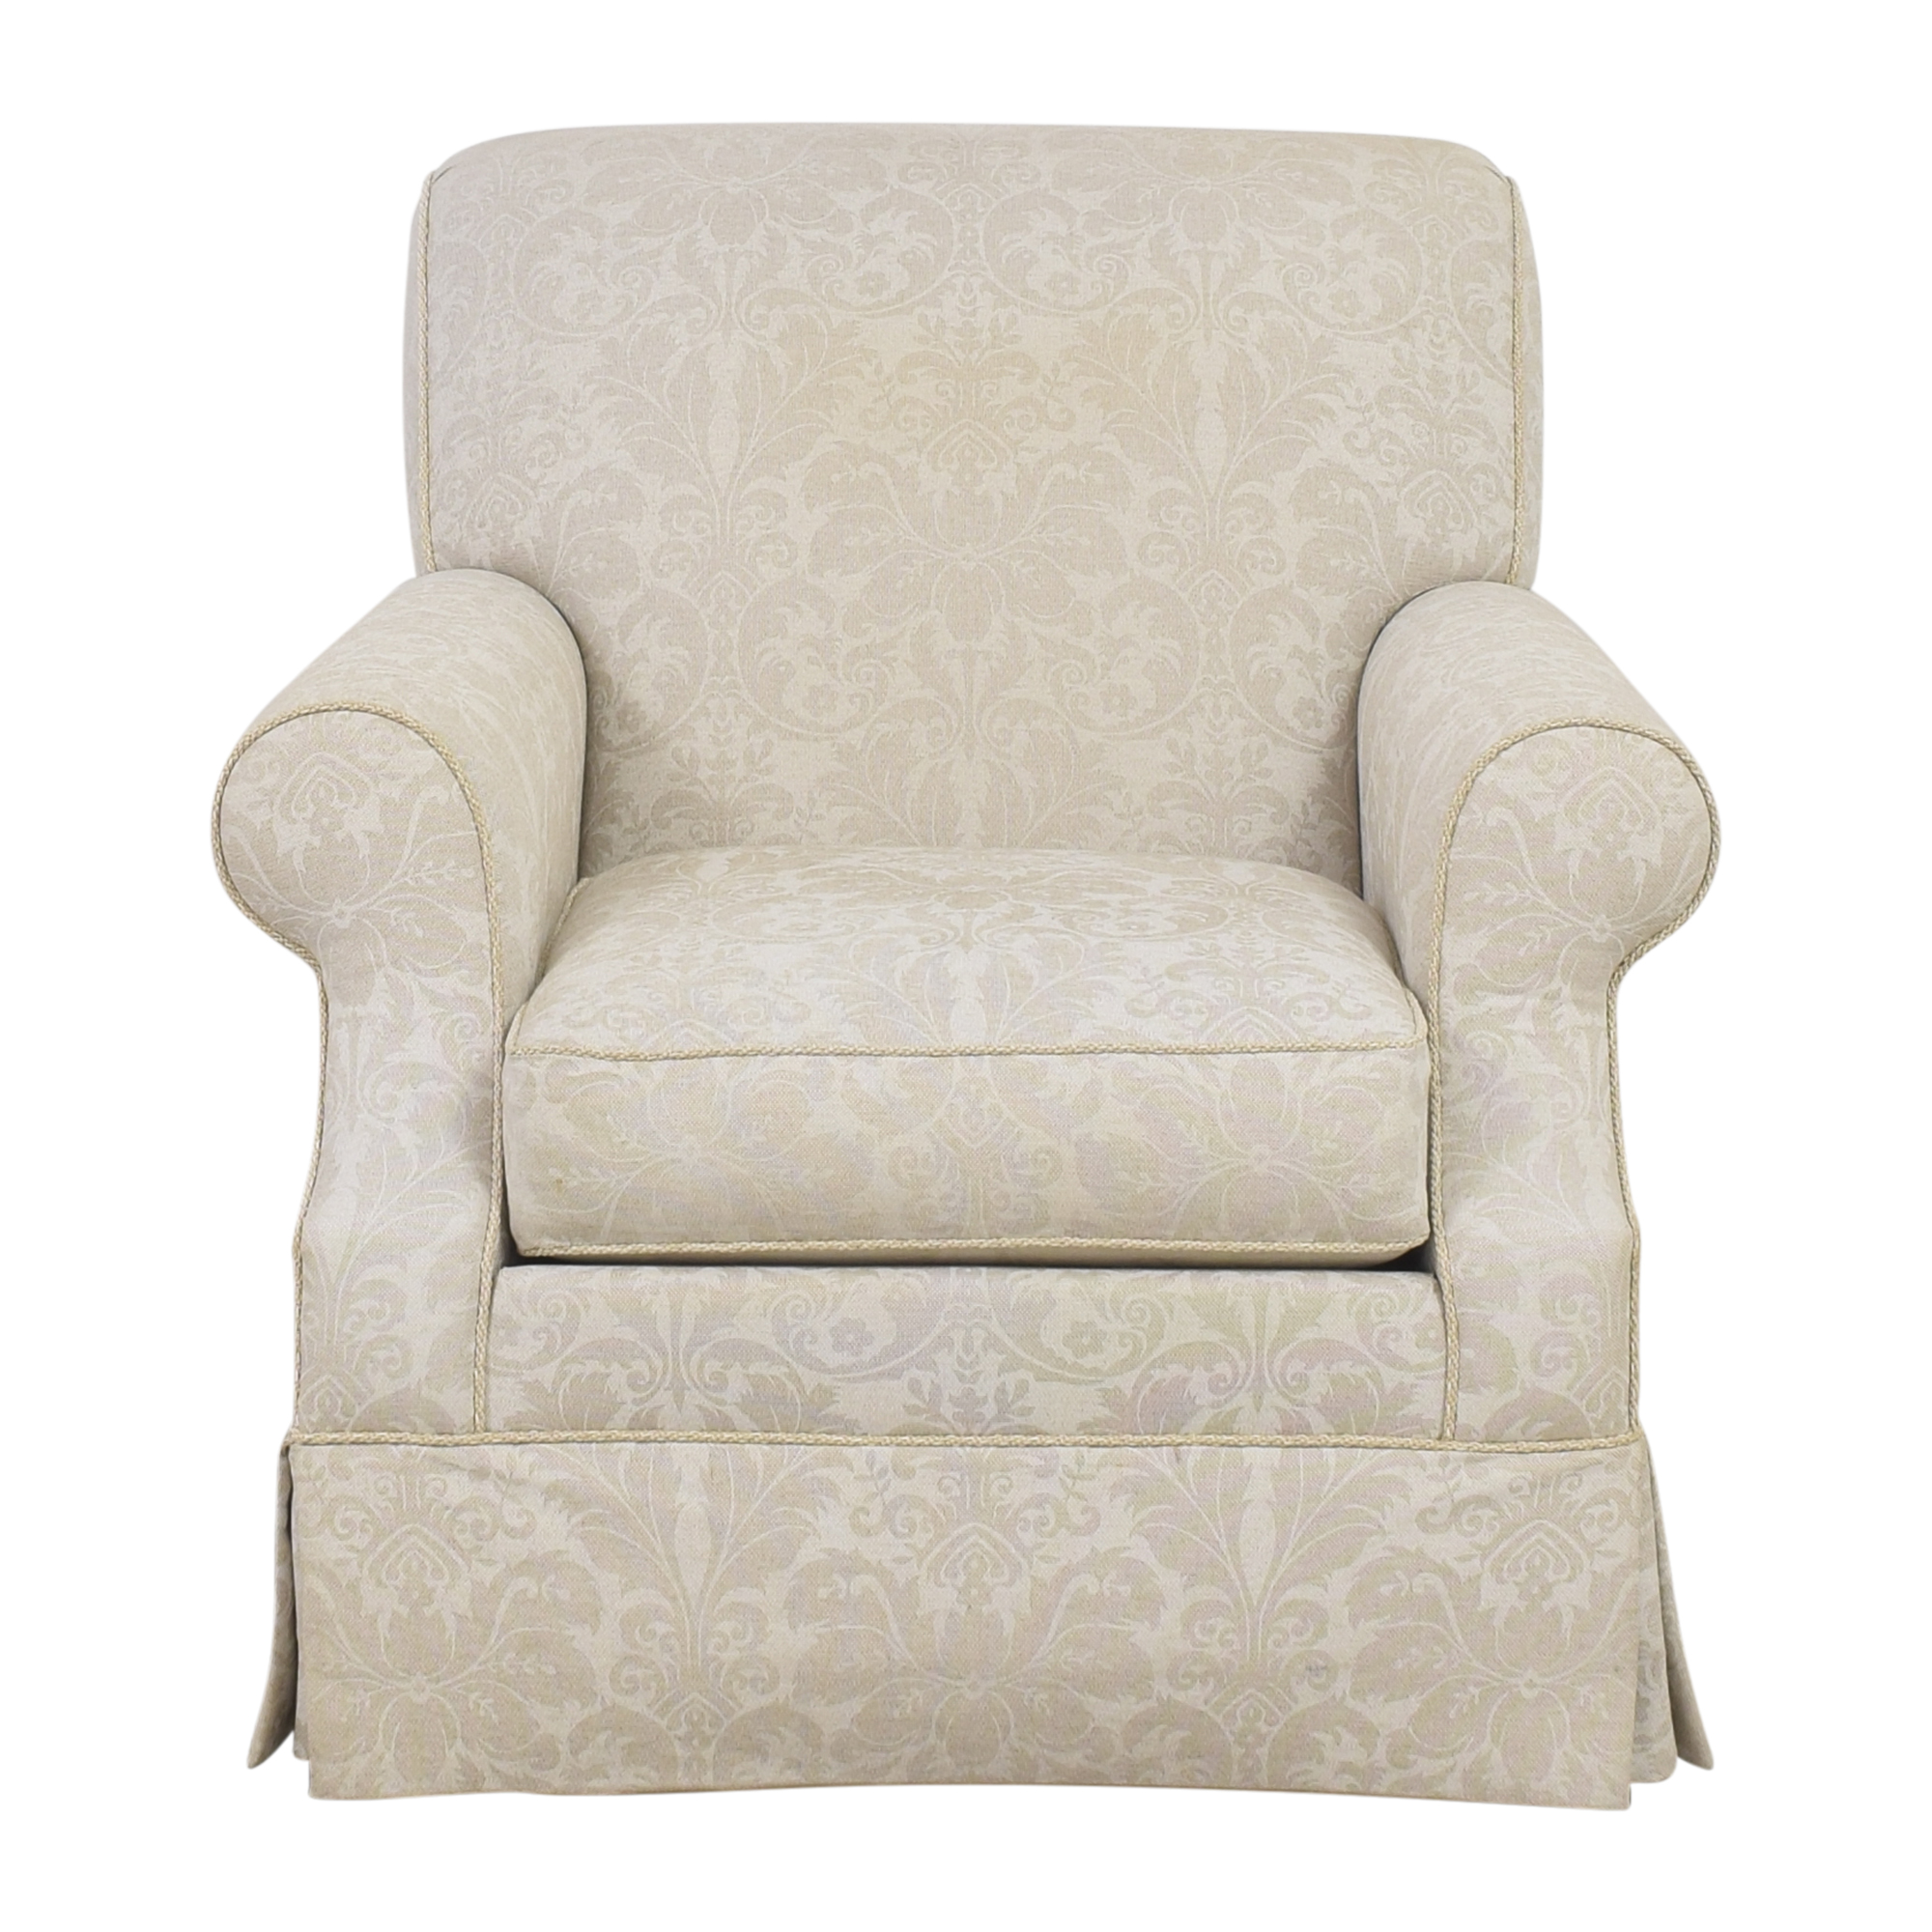 Ethan Allen Ethan Allen Damask Accent Chair ma